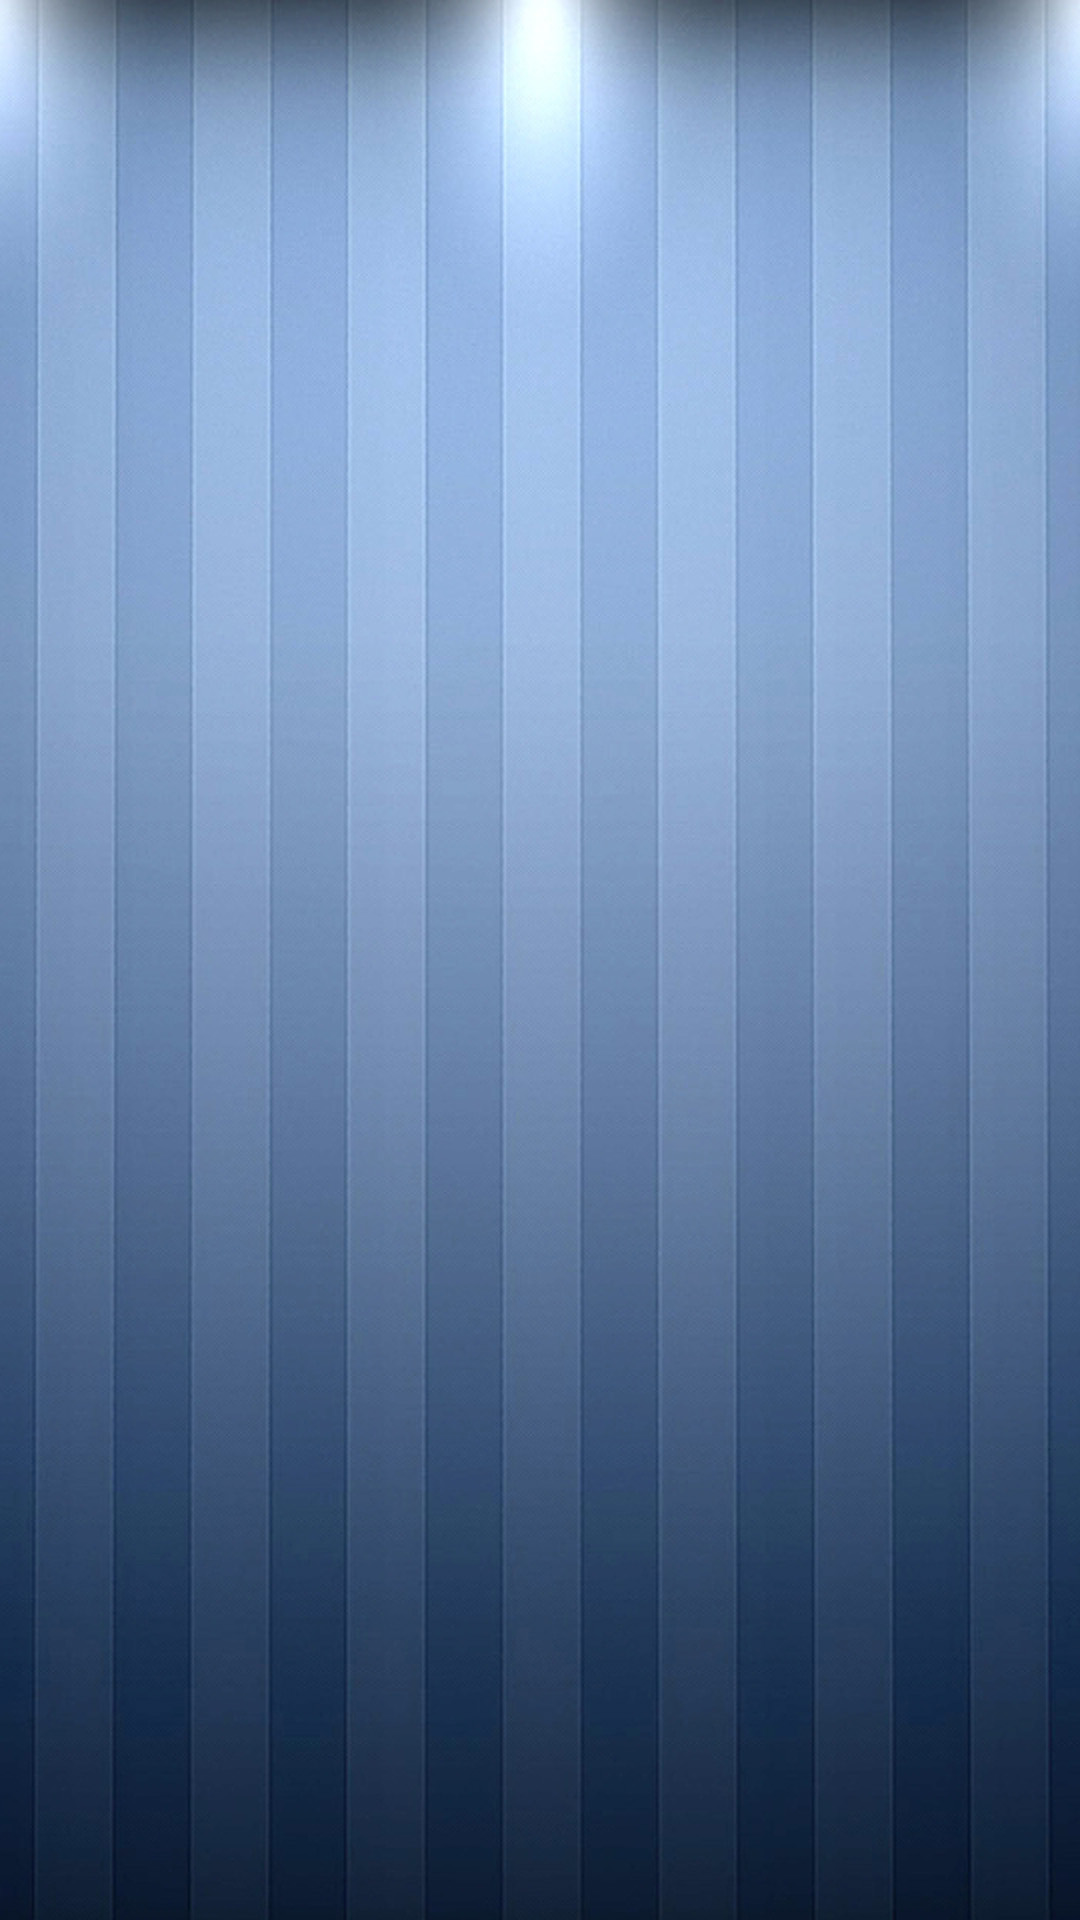 background blue stripes hd wallpaper iphone 6 plus